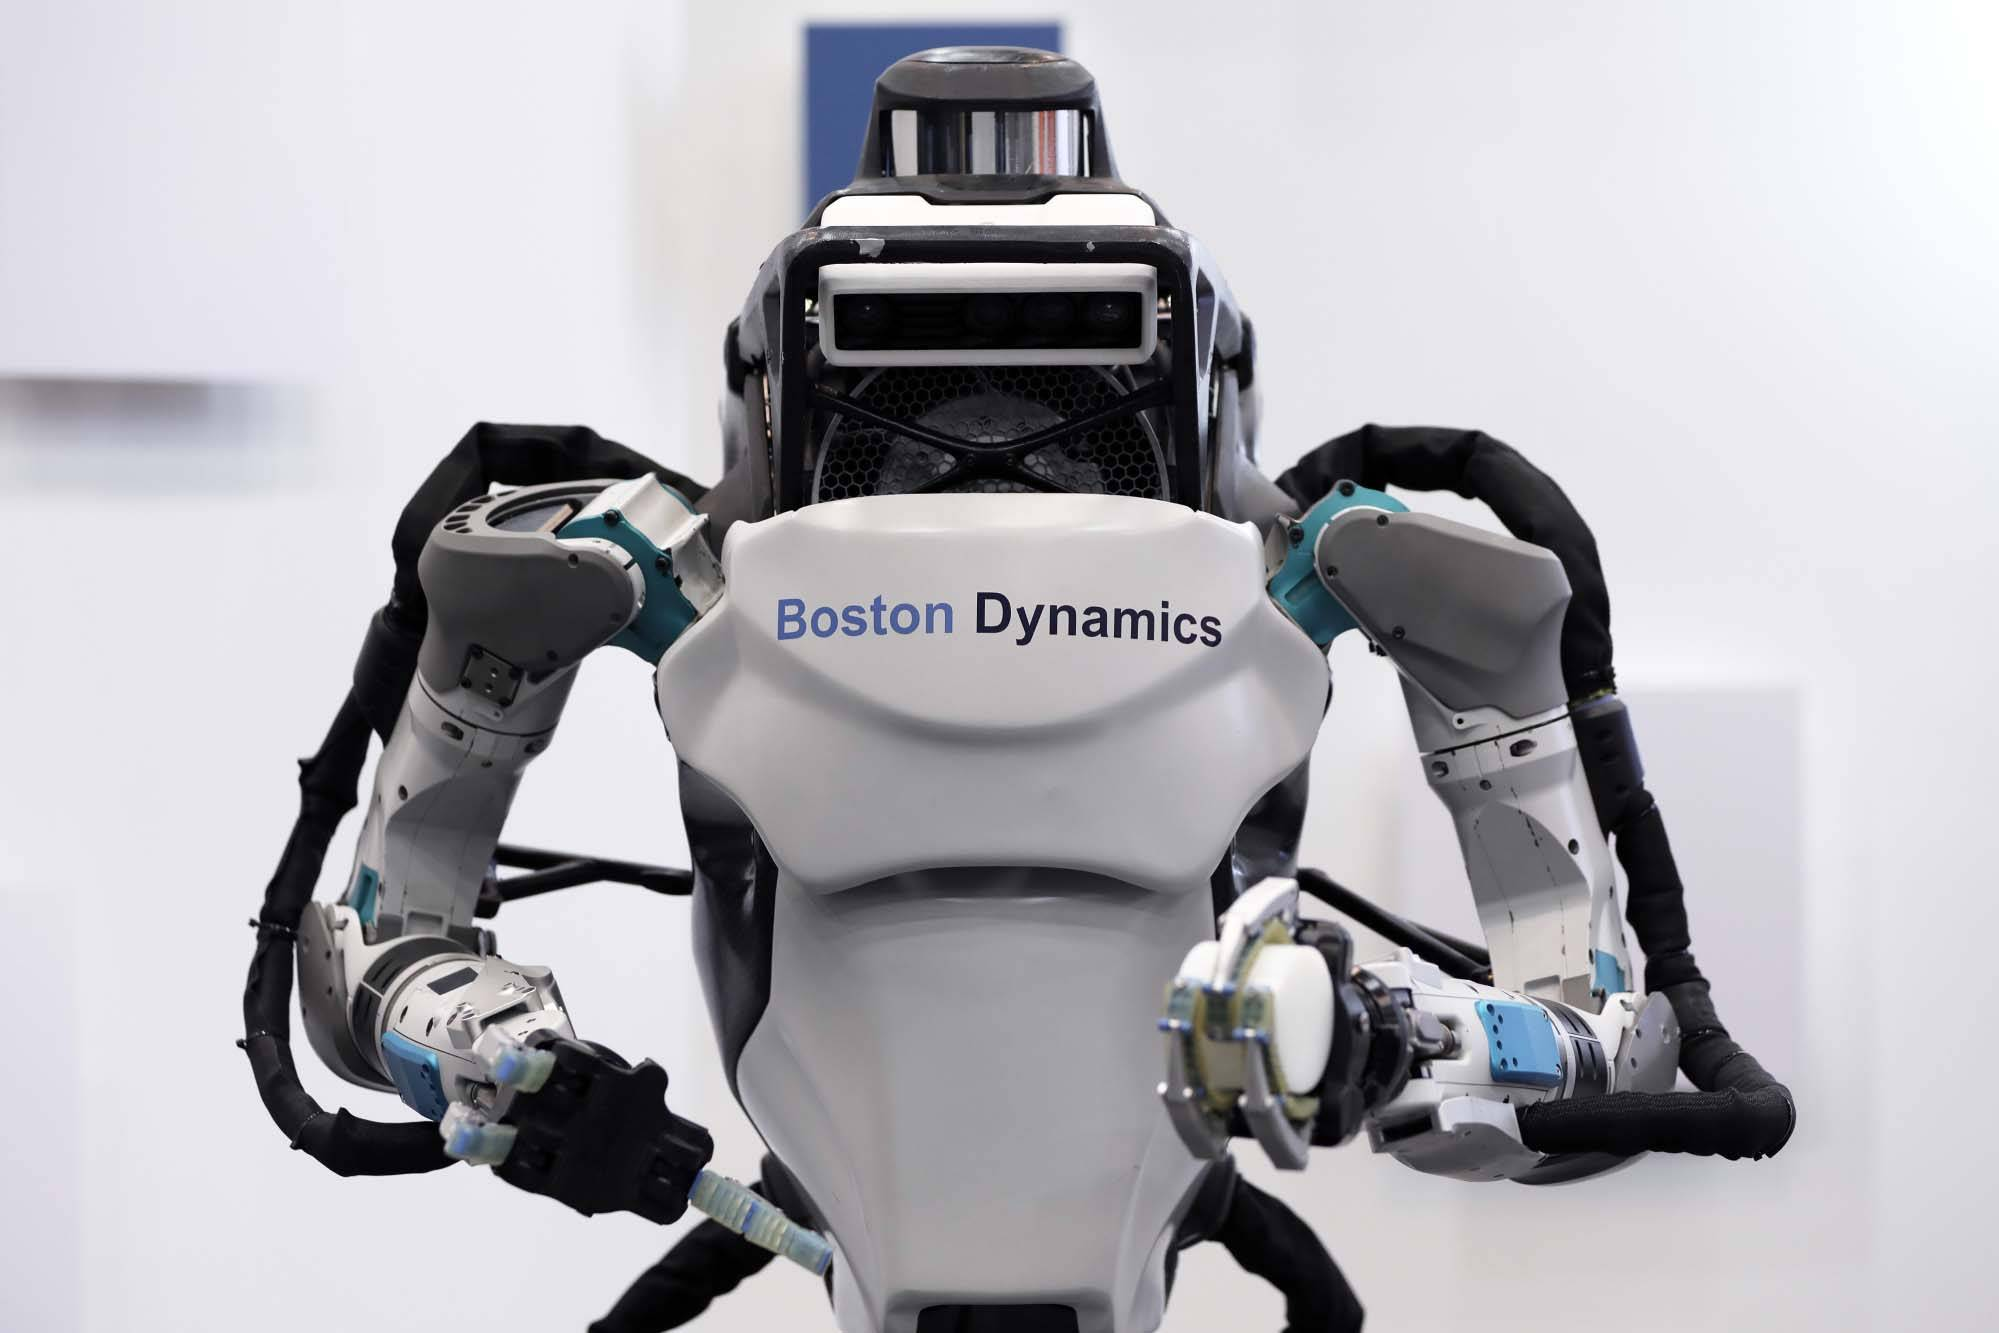 A Boston Dynamics Inc. Atlas humanoid robot.